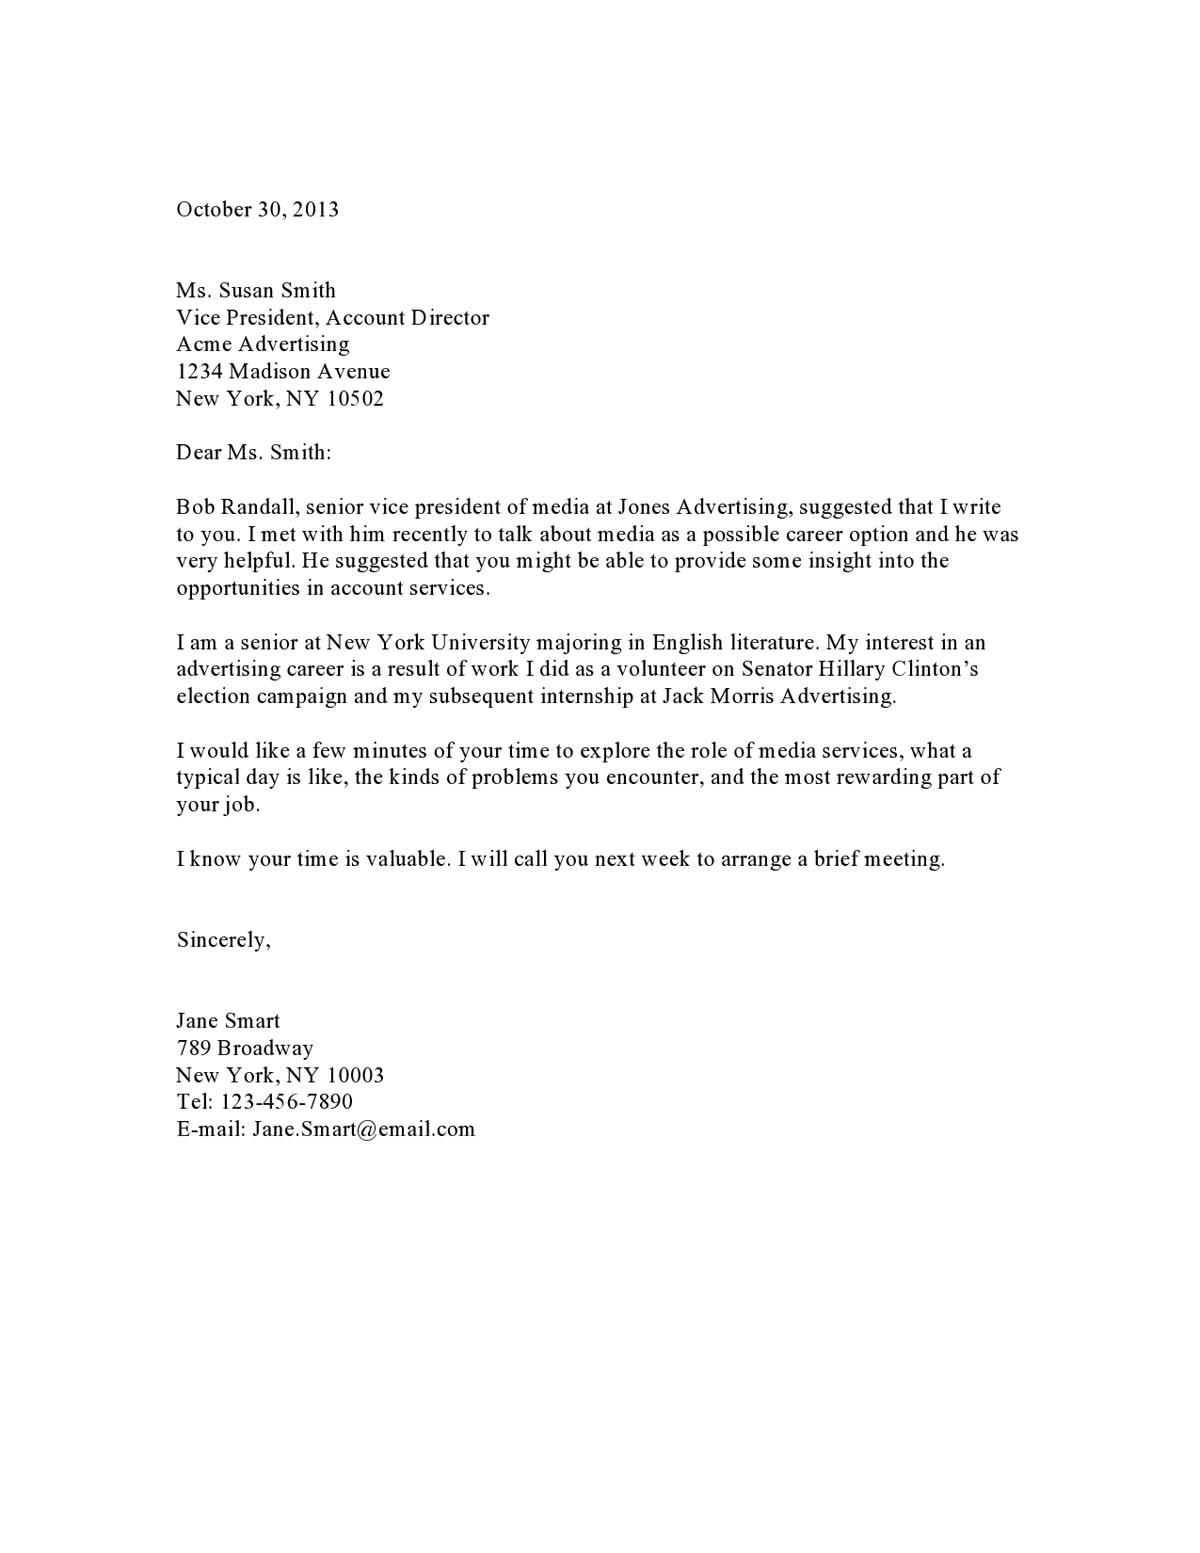 Sample cover letter for applying a job for Cover letter for shadowing a doctor